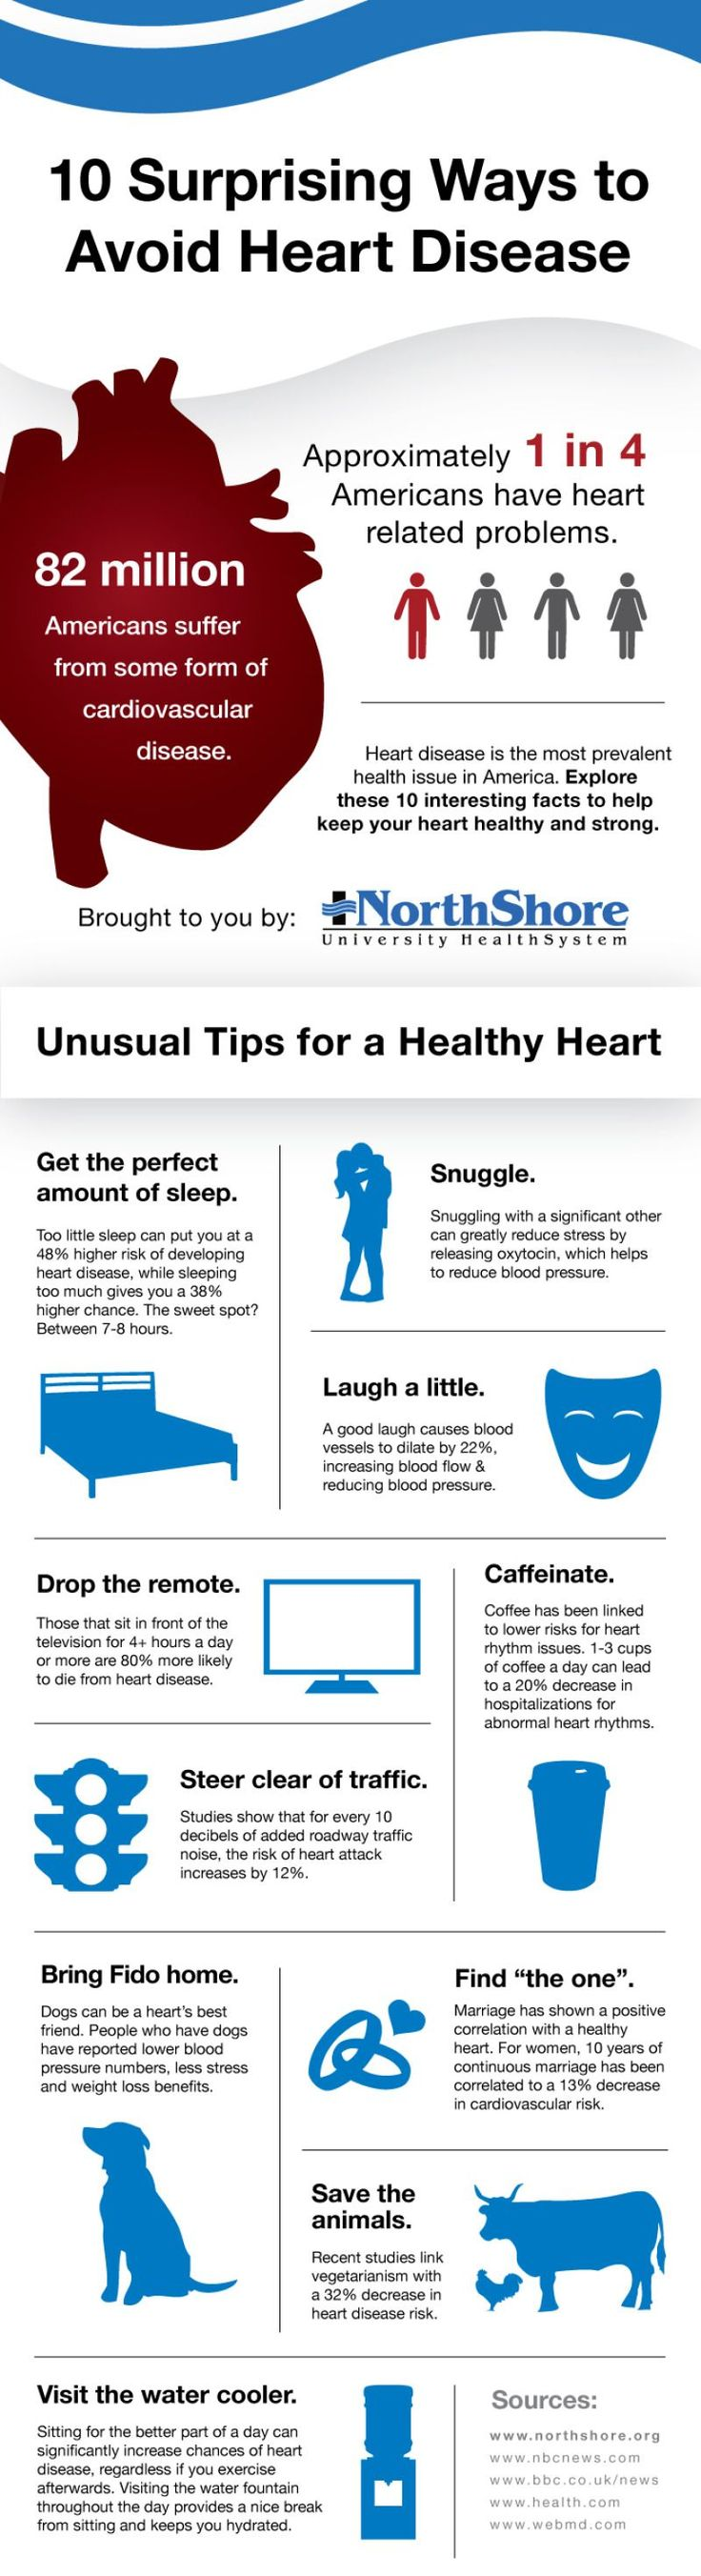 10 surprising ways to avoid heart disease #fitness #health #infographic